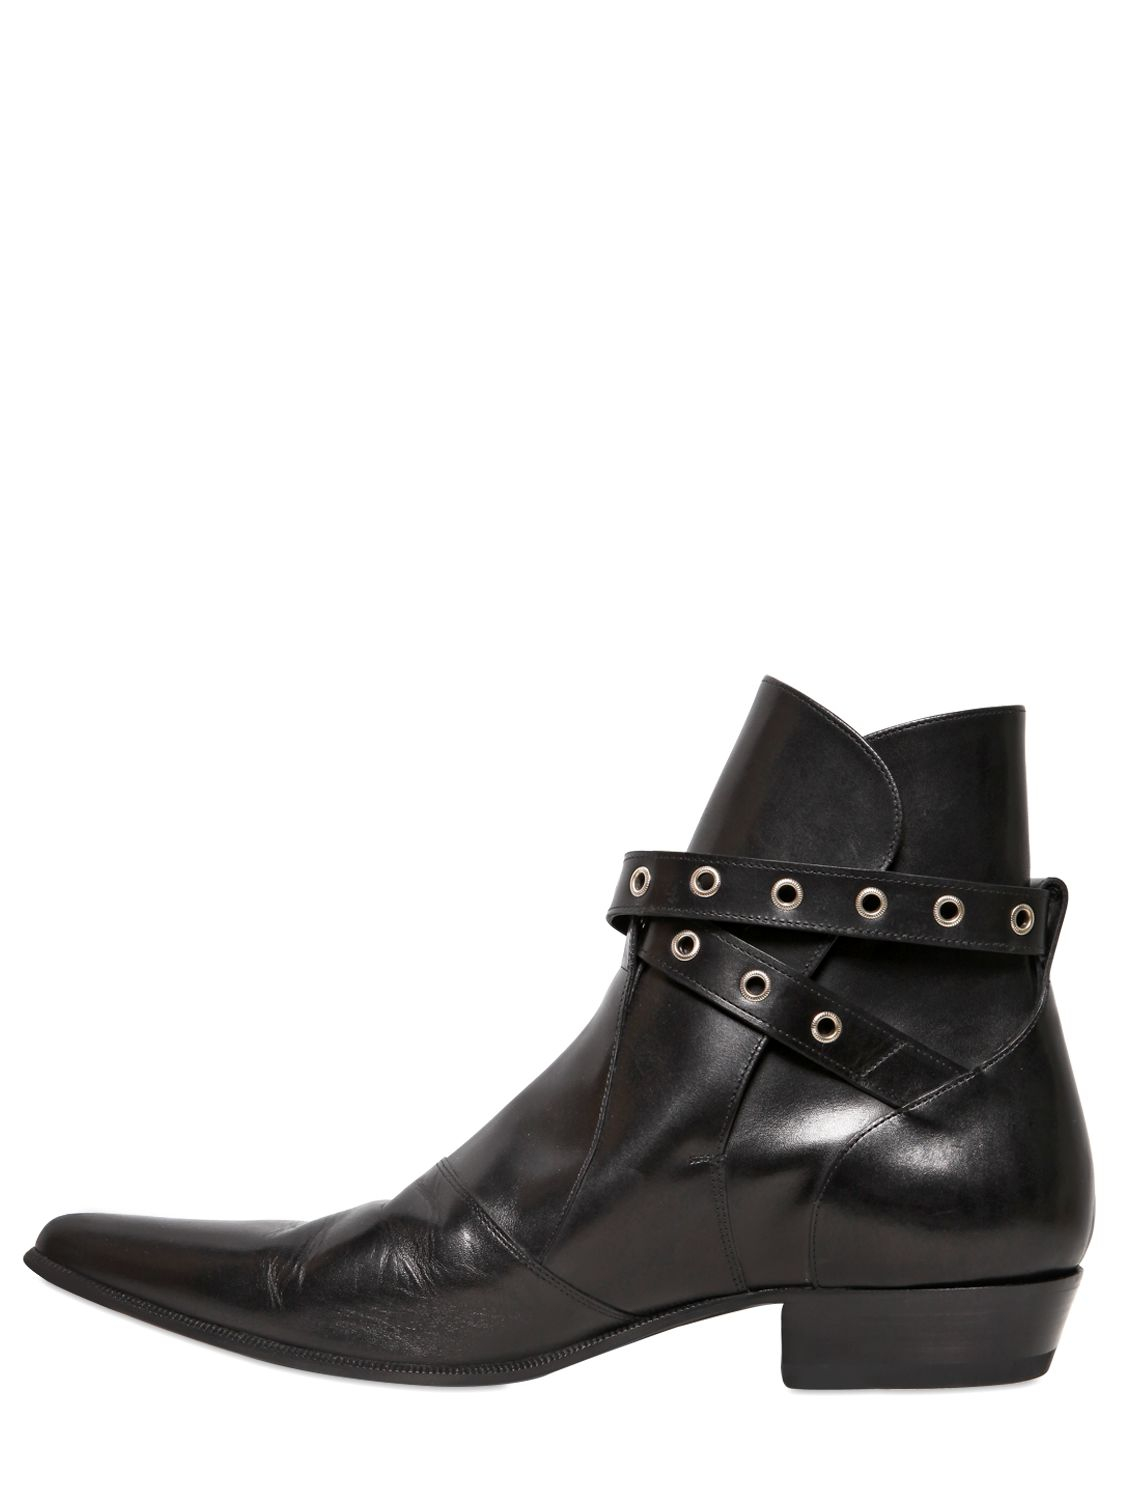 Saint Laurent Leather Buckled Boots Clearance New Outlet Recommend Outlet Pick A Best Discount Classic Factory Price oFrTEv